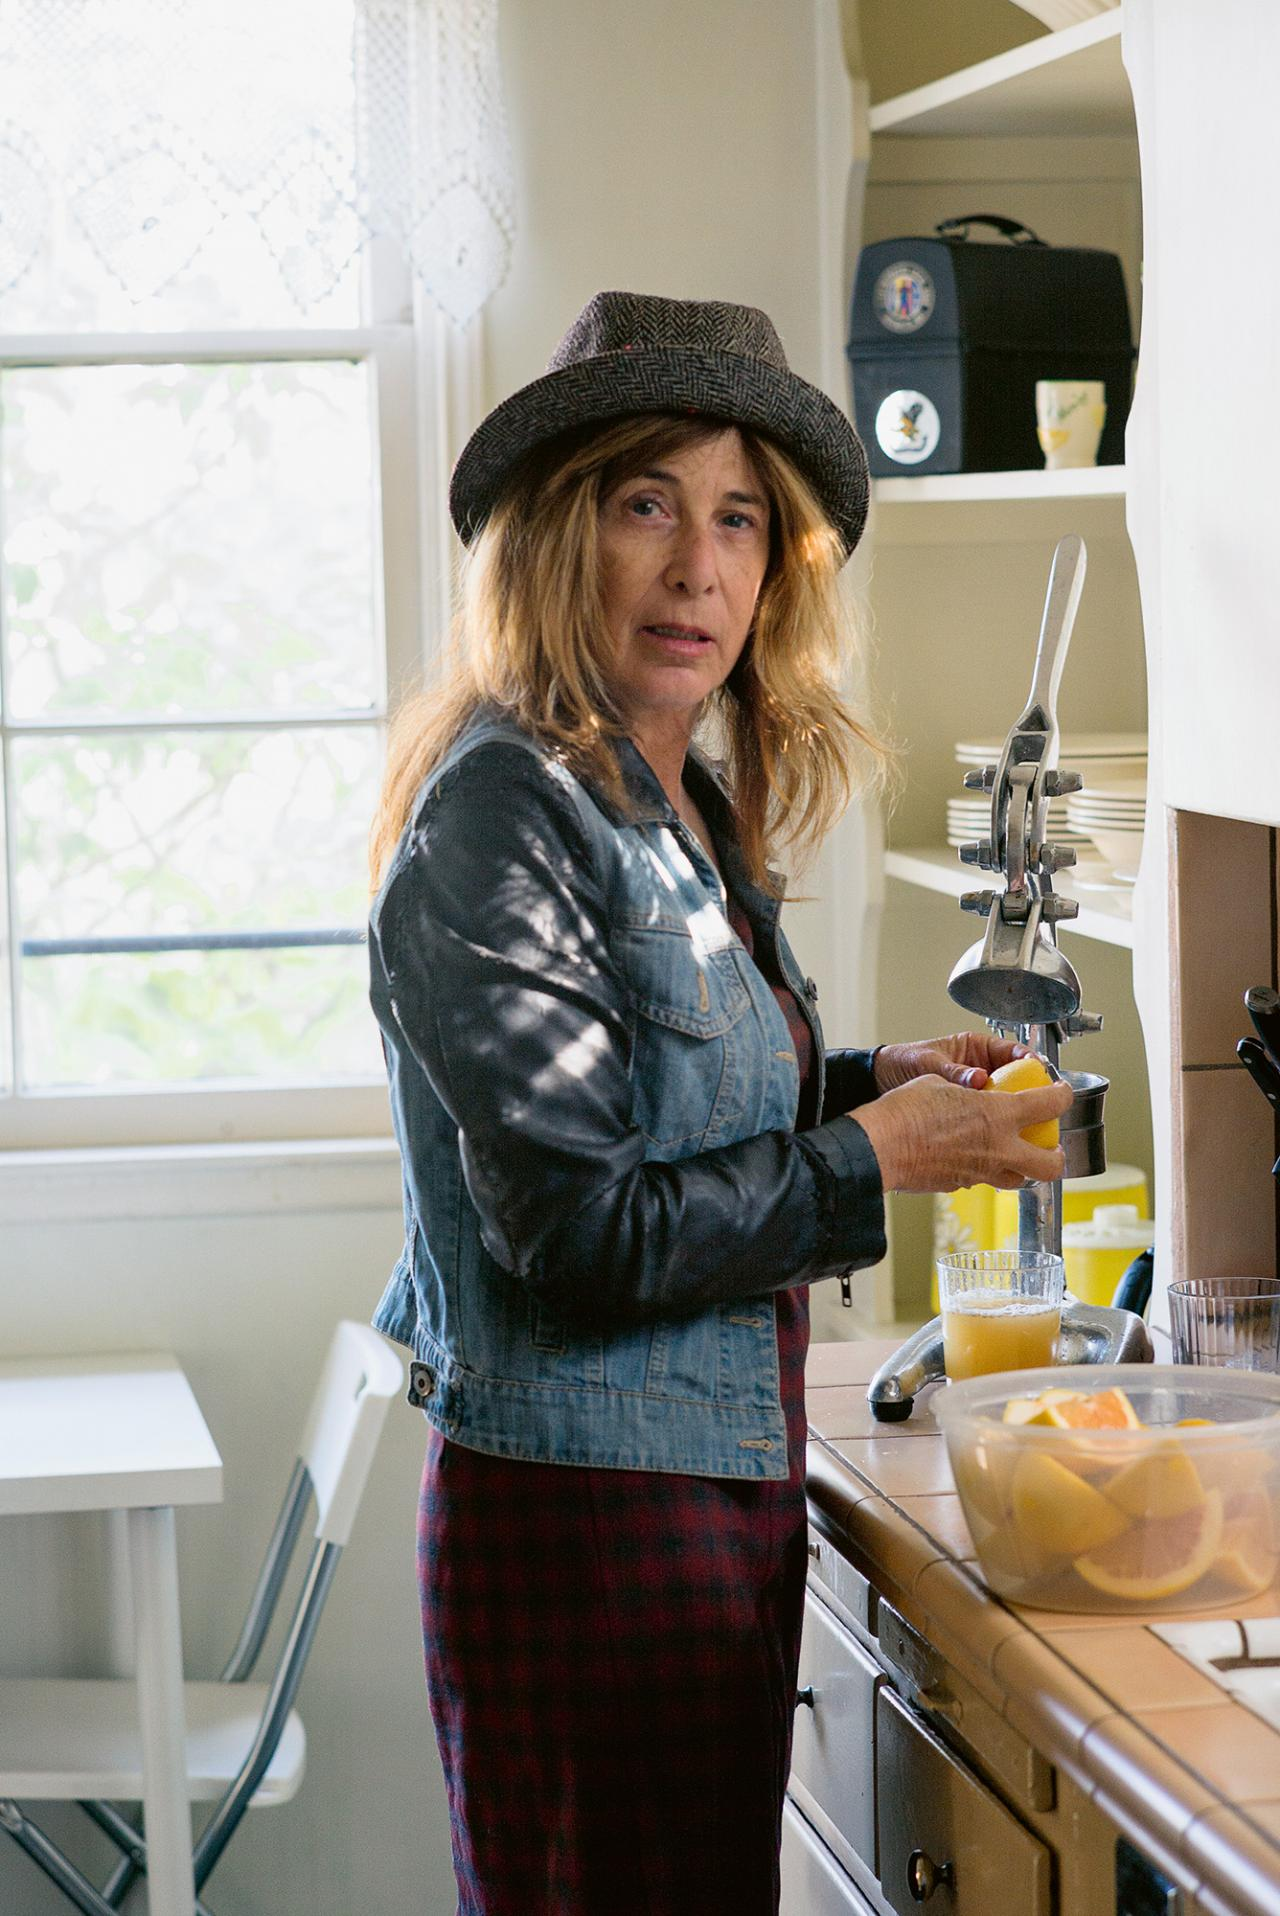 Chris Kraus, Los Angeles, 2017